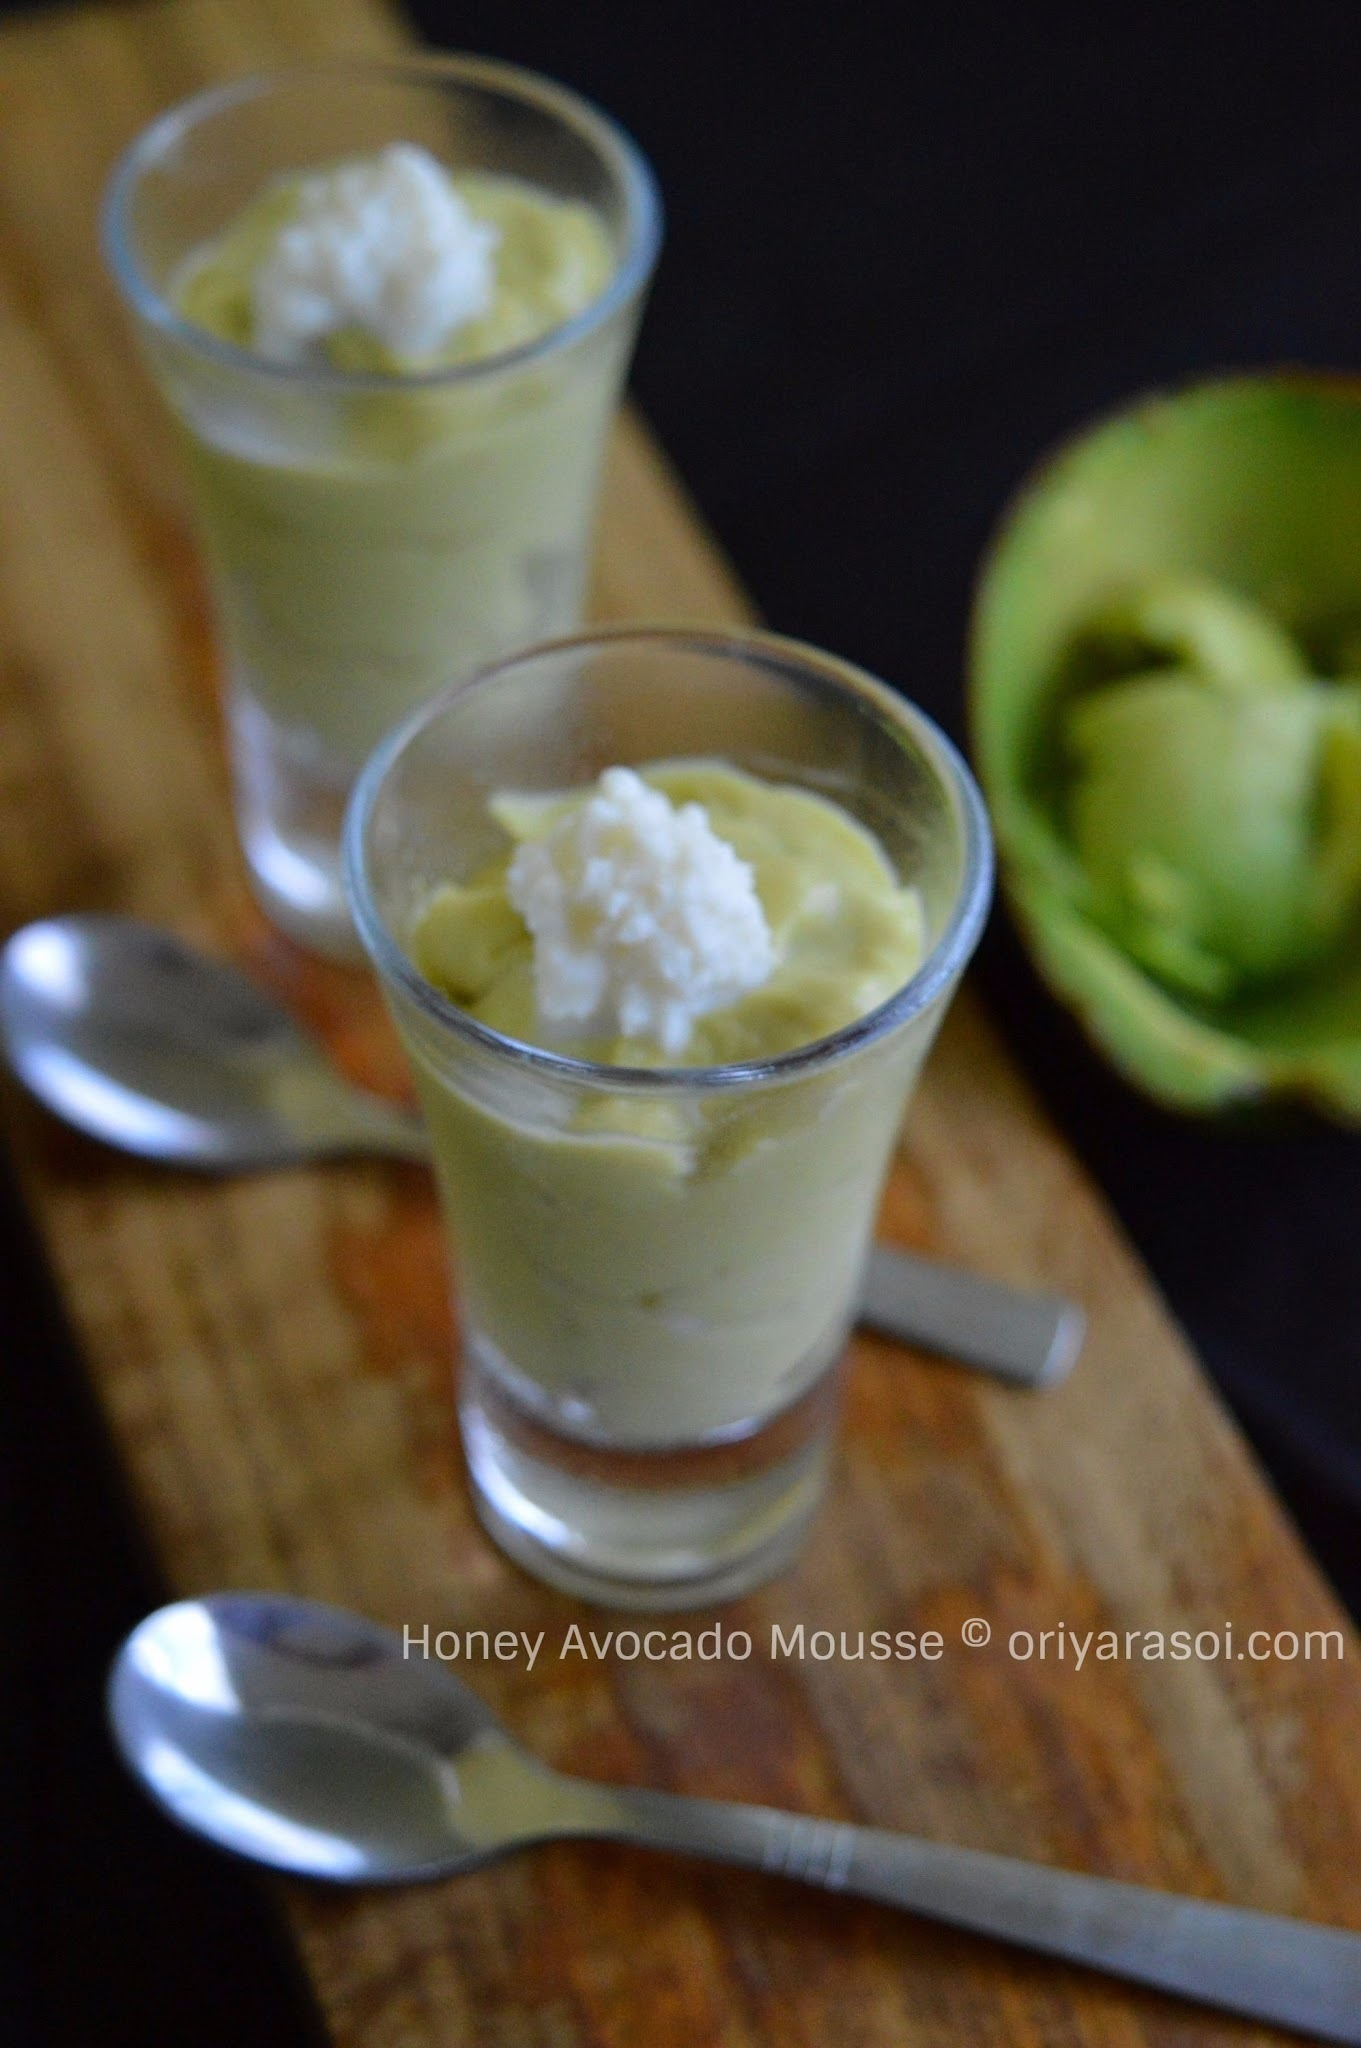 Honey Avocado Mousse